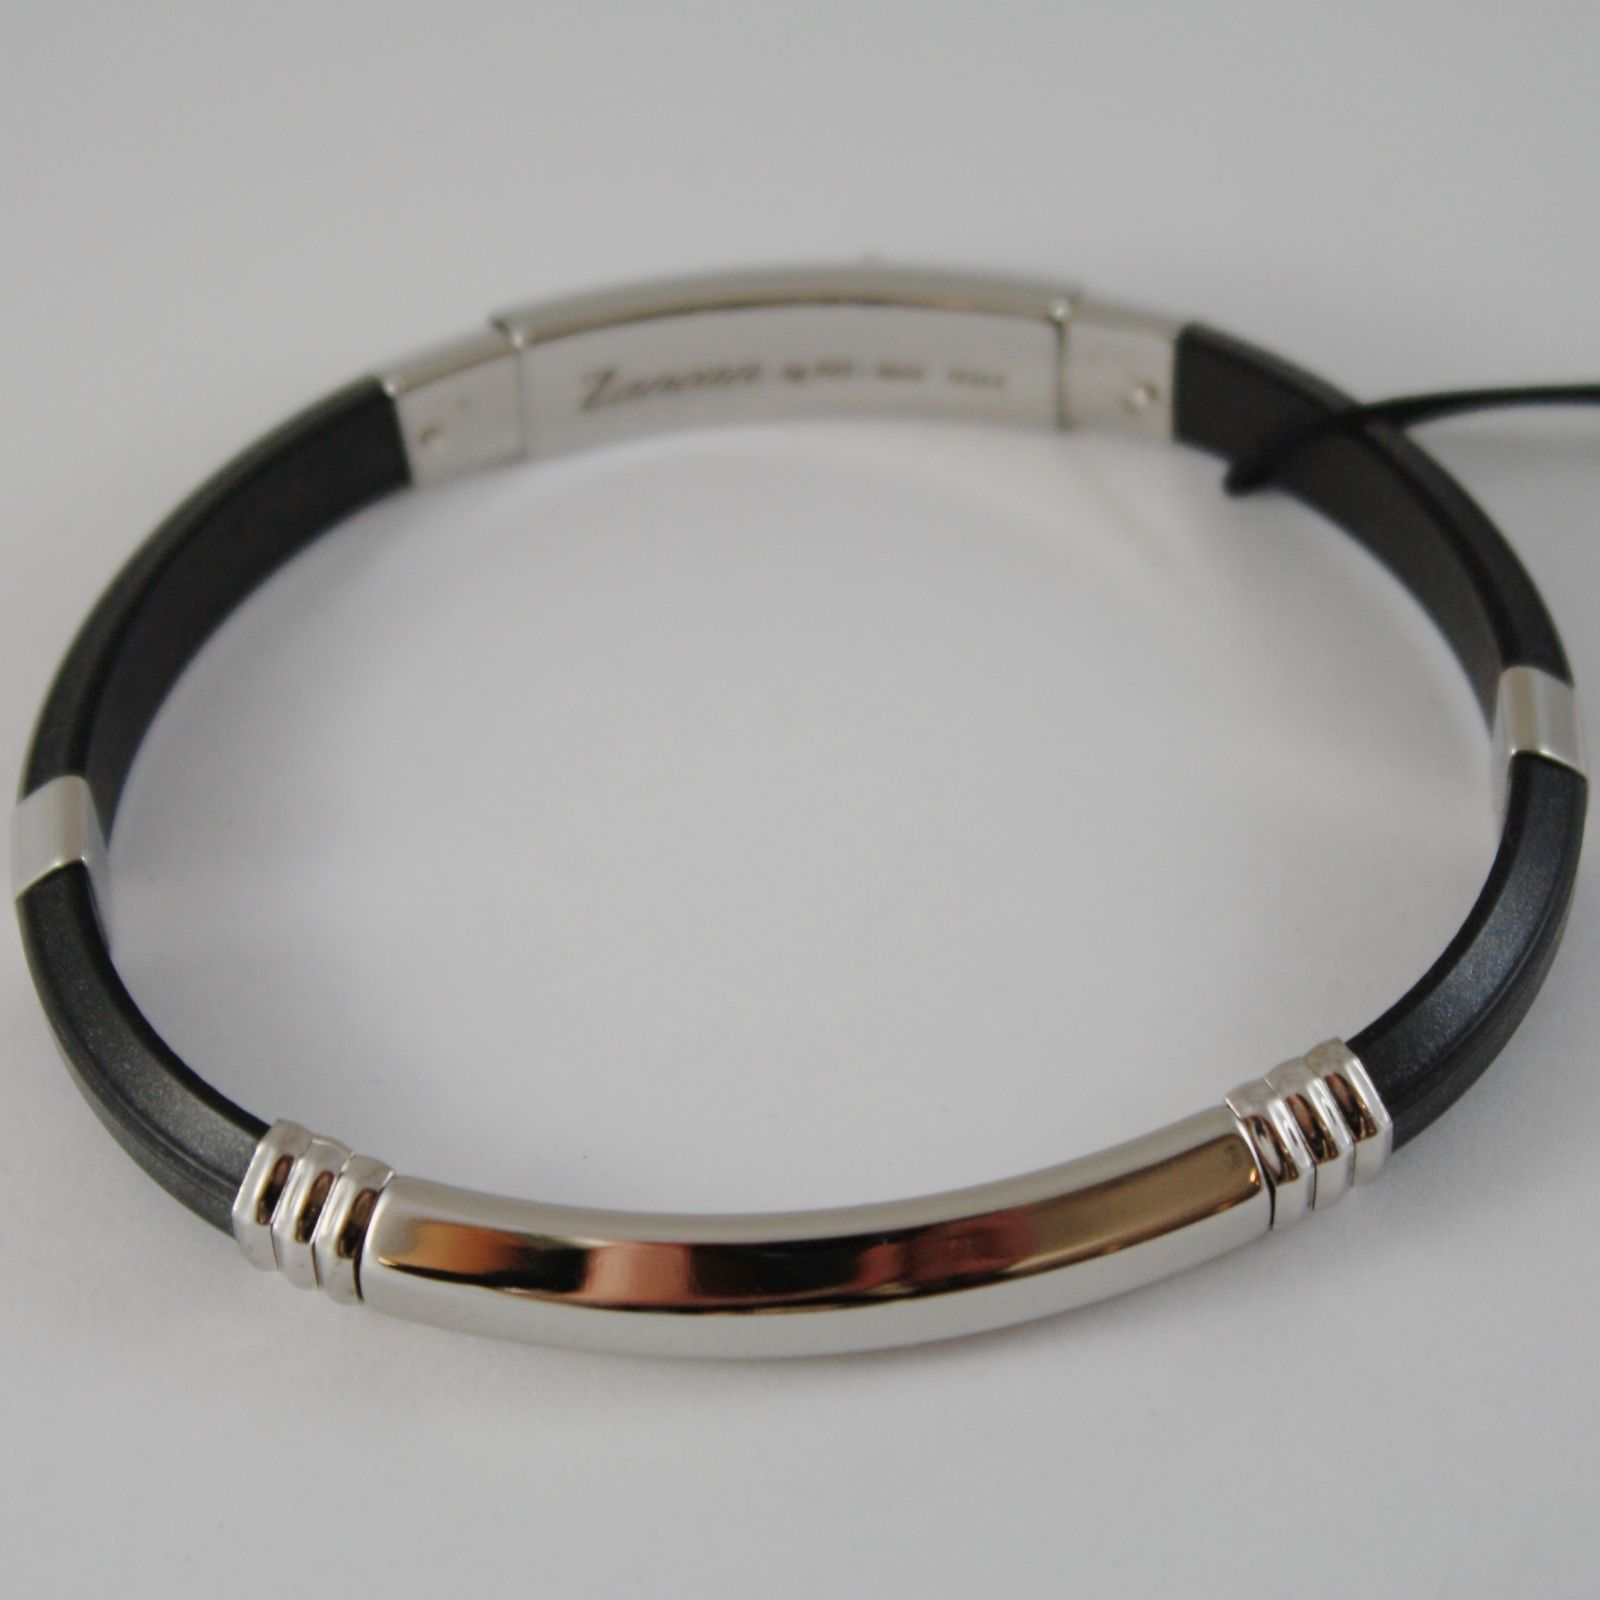 925 SILVER, STAINLESS STEEL PLATE BLACK SILICON BRACELET BY ZANCAN MADE IN ITALY